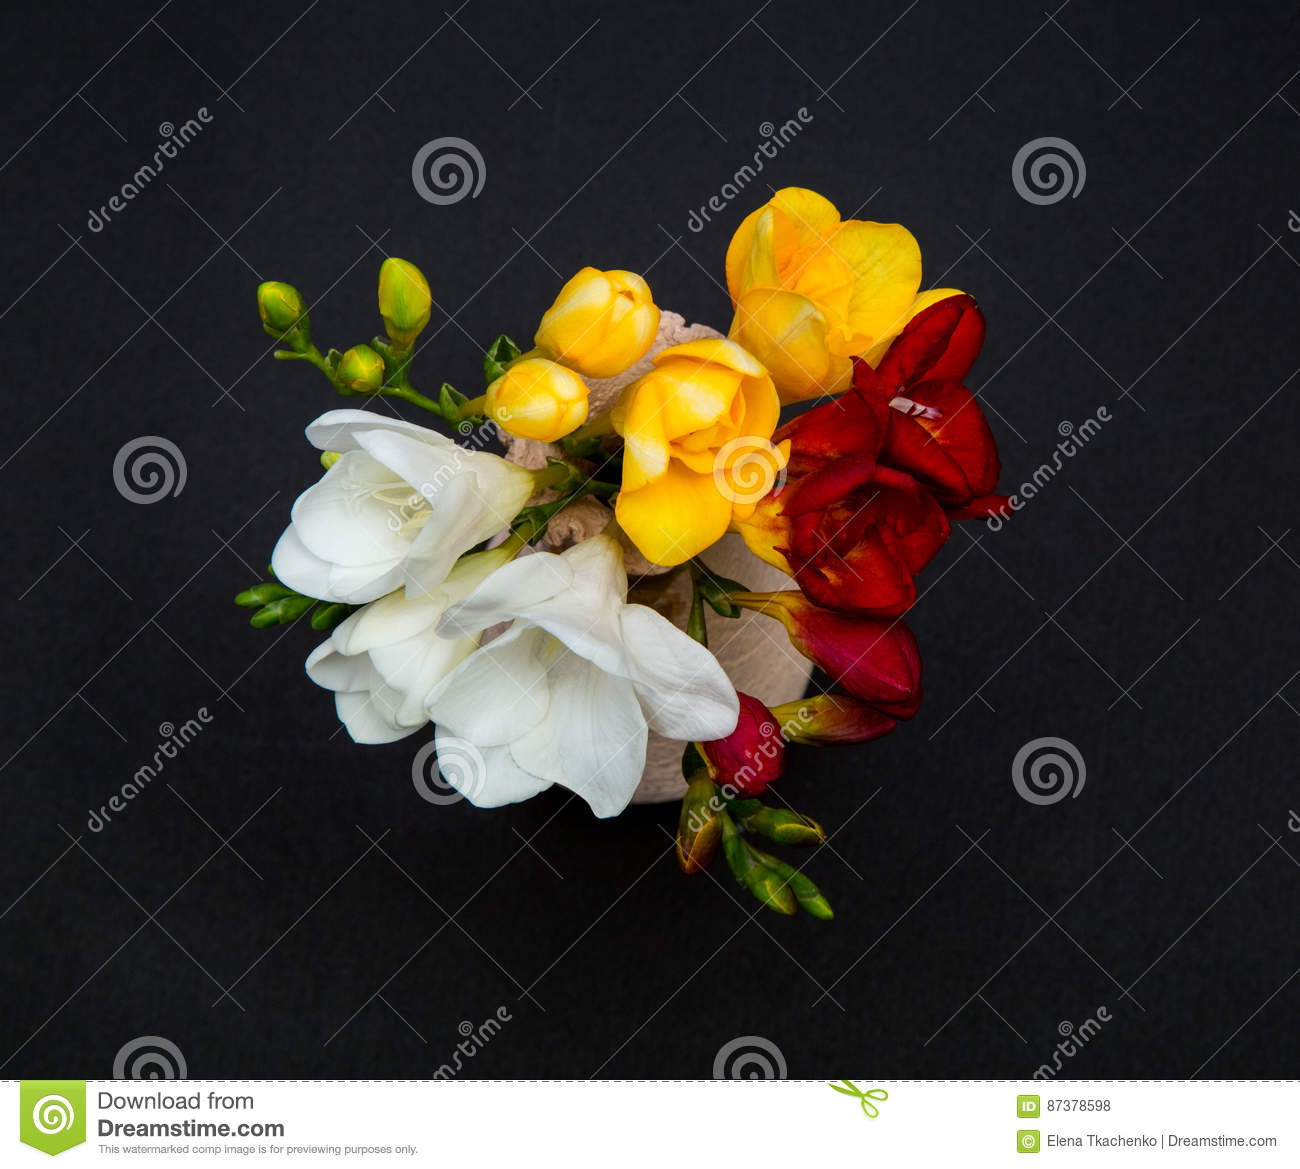 Flowers of freesia white yellow and red in a small vase on a black background